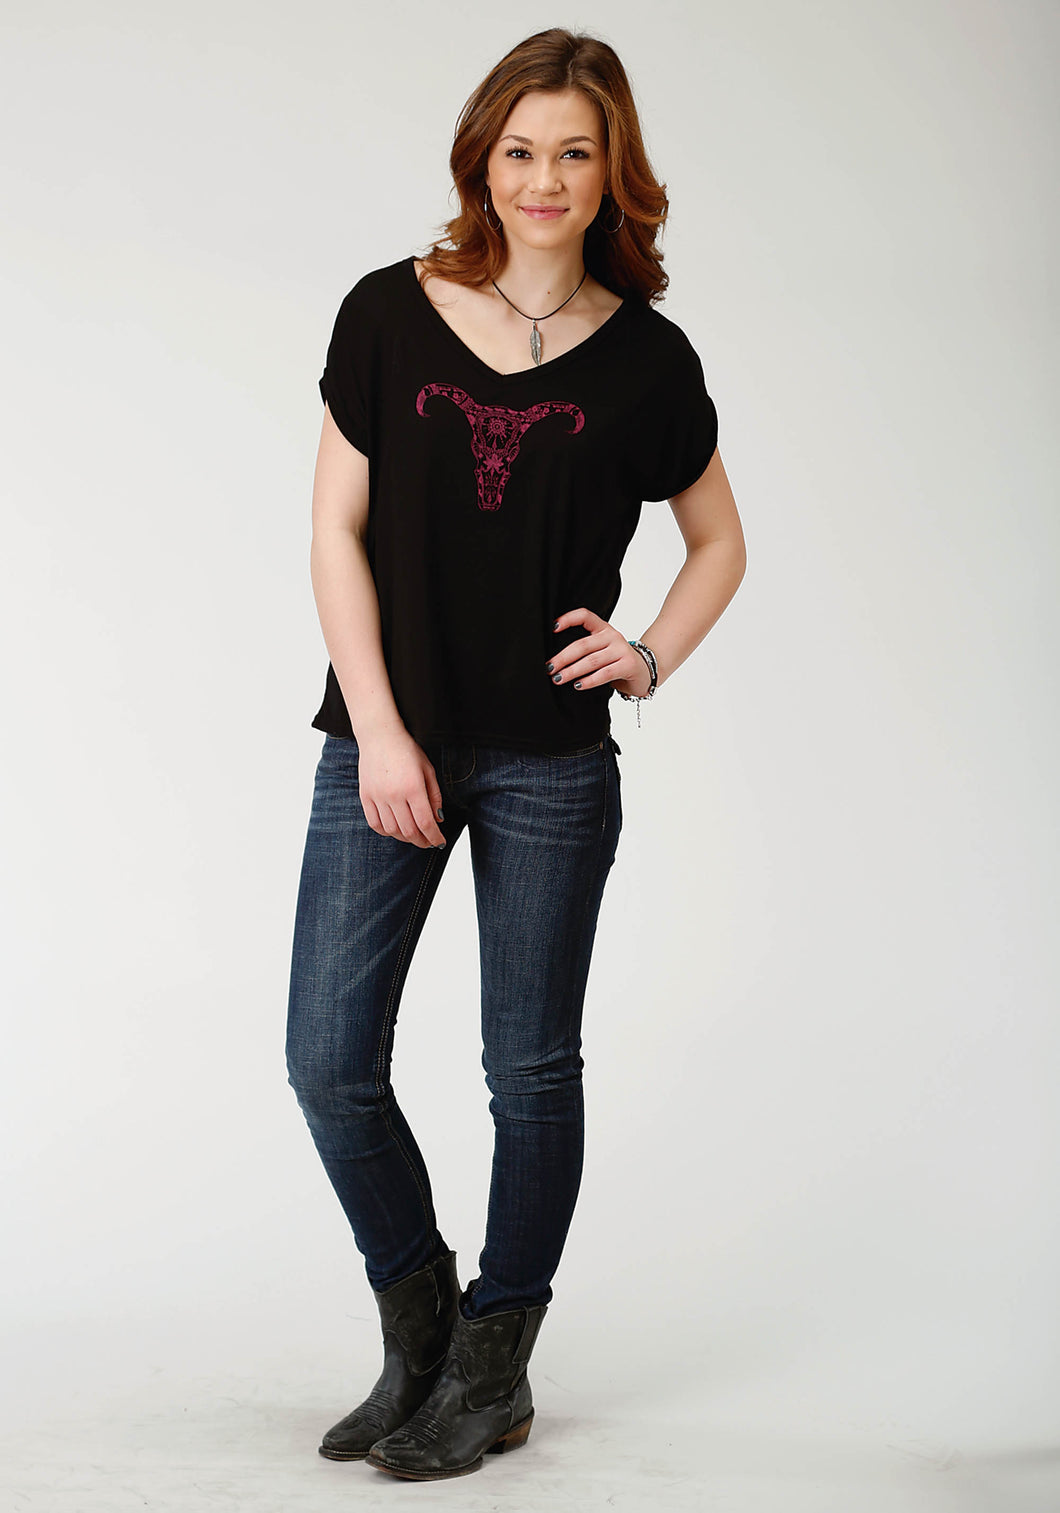 Five Star Collection- Winter Ii 5star Womens Short Sleeve 2259 Pr Jersey Tee Wv Neck